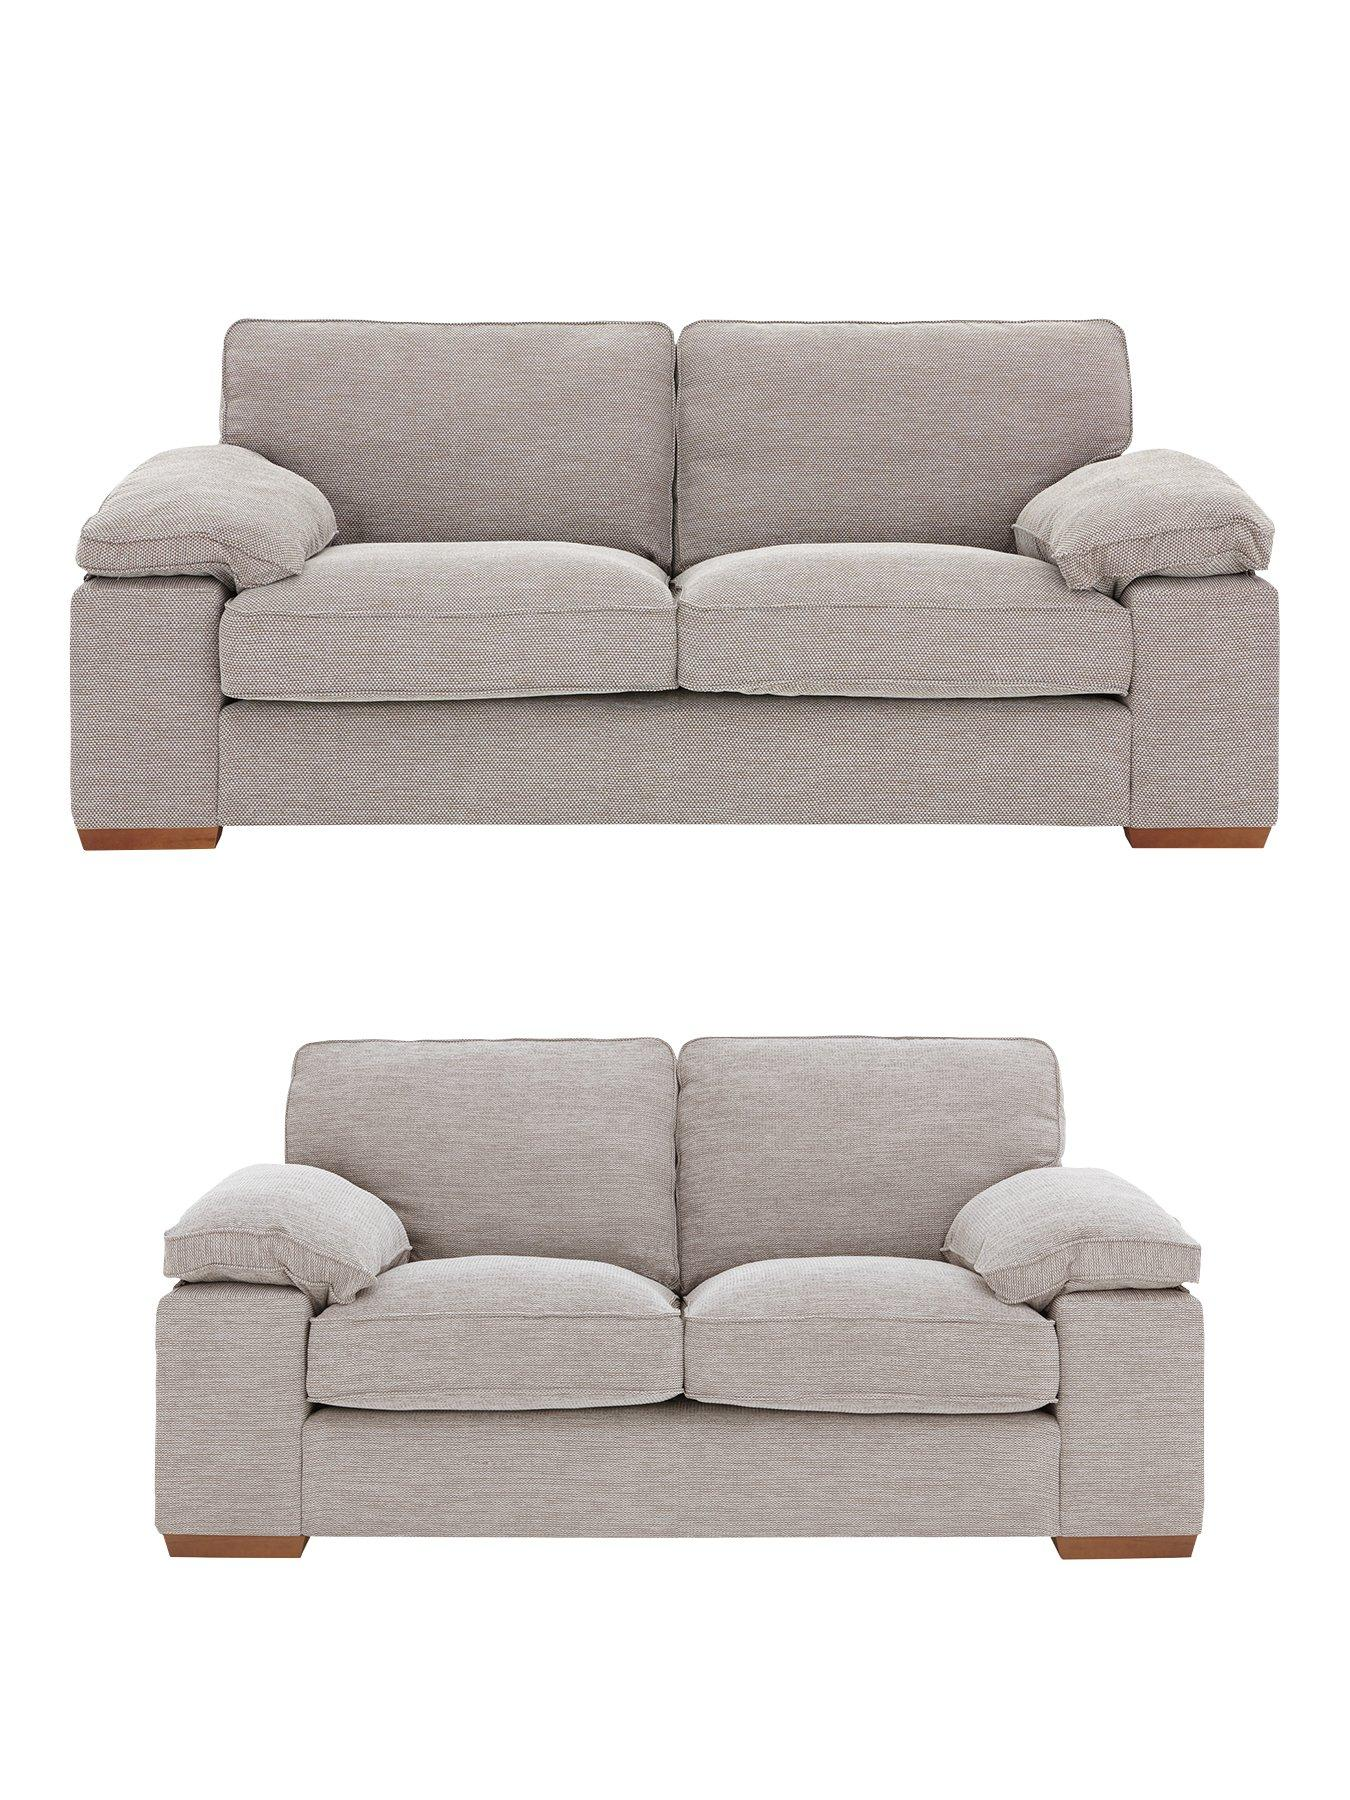 3 seater fabric sofa you love santa monica aylesbury 2 set buy and save littlewoods com